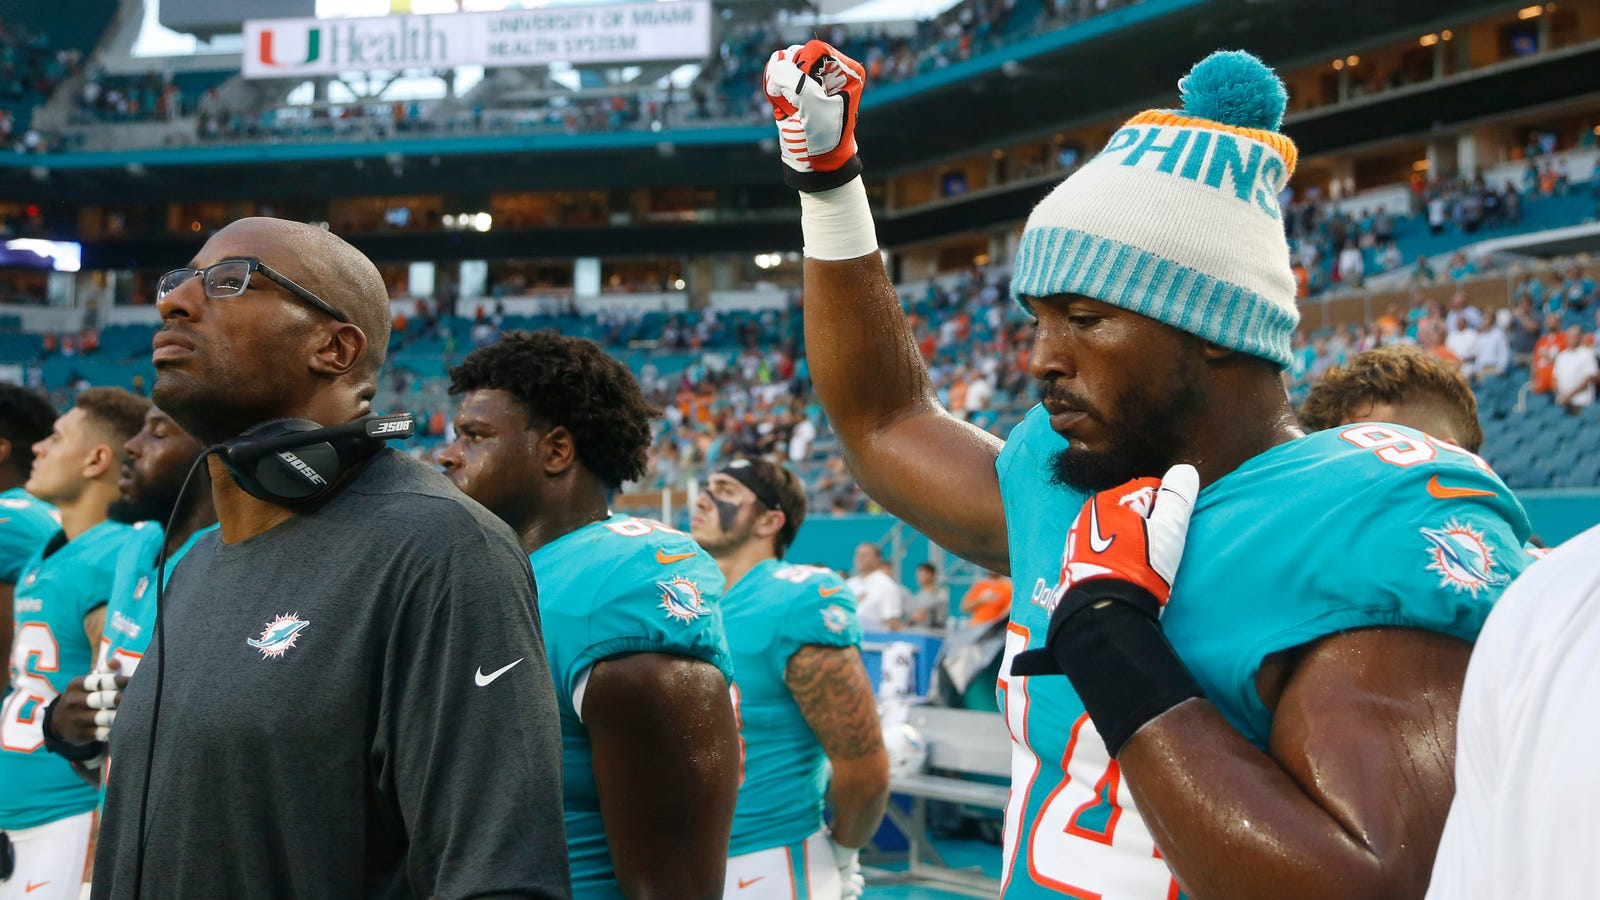 Broward County Police Union urges members to boycott Miami Dolphins games over anthems protests